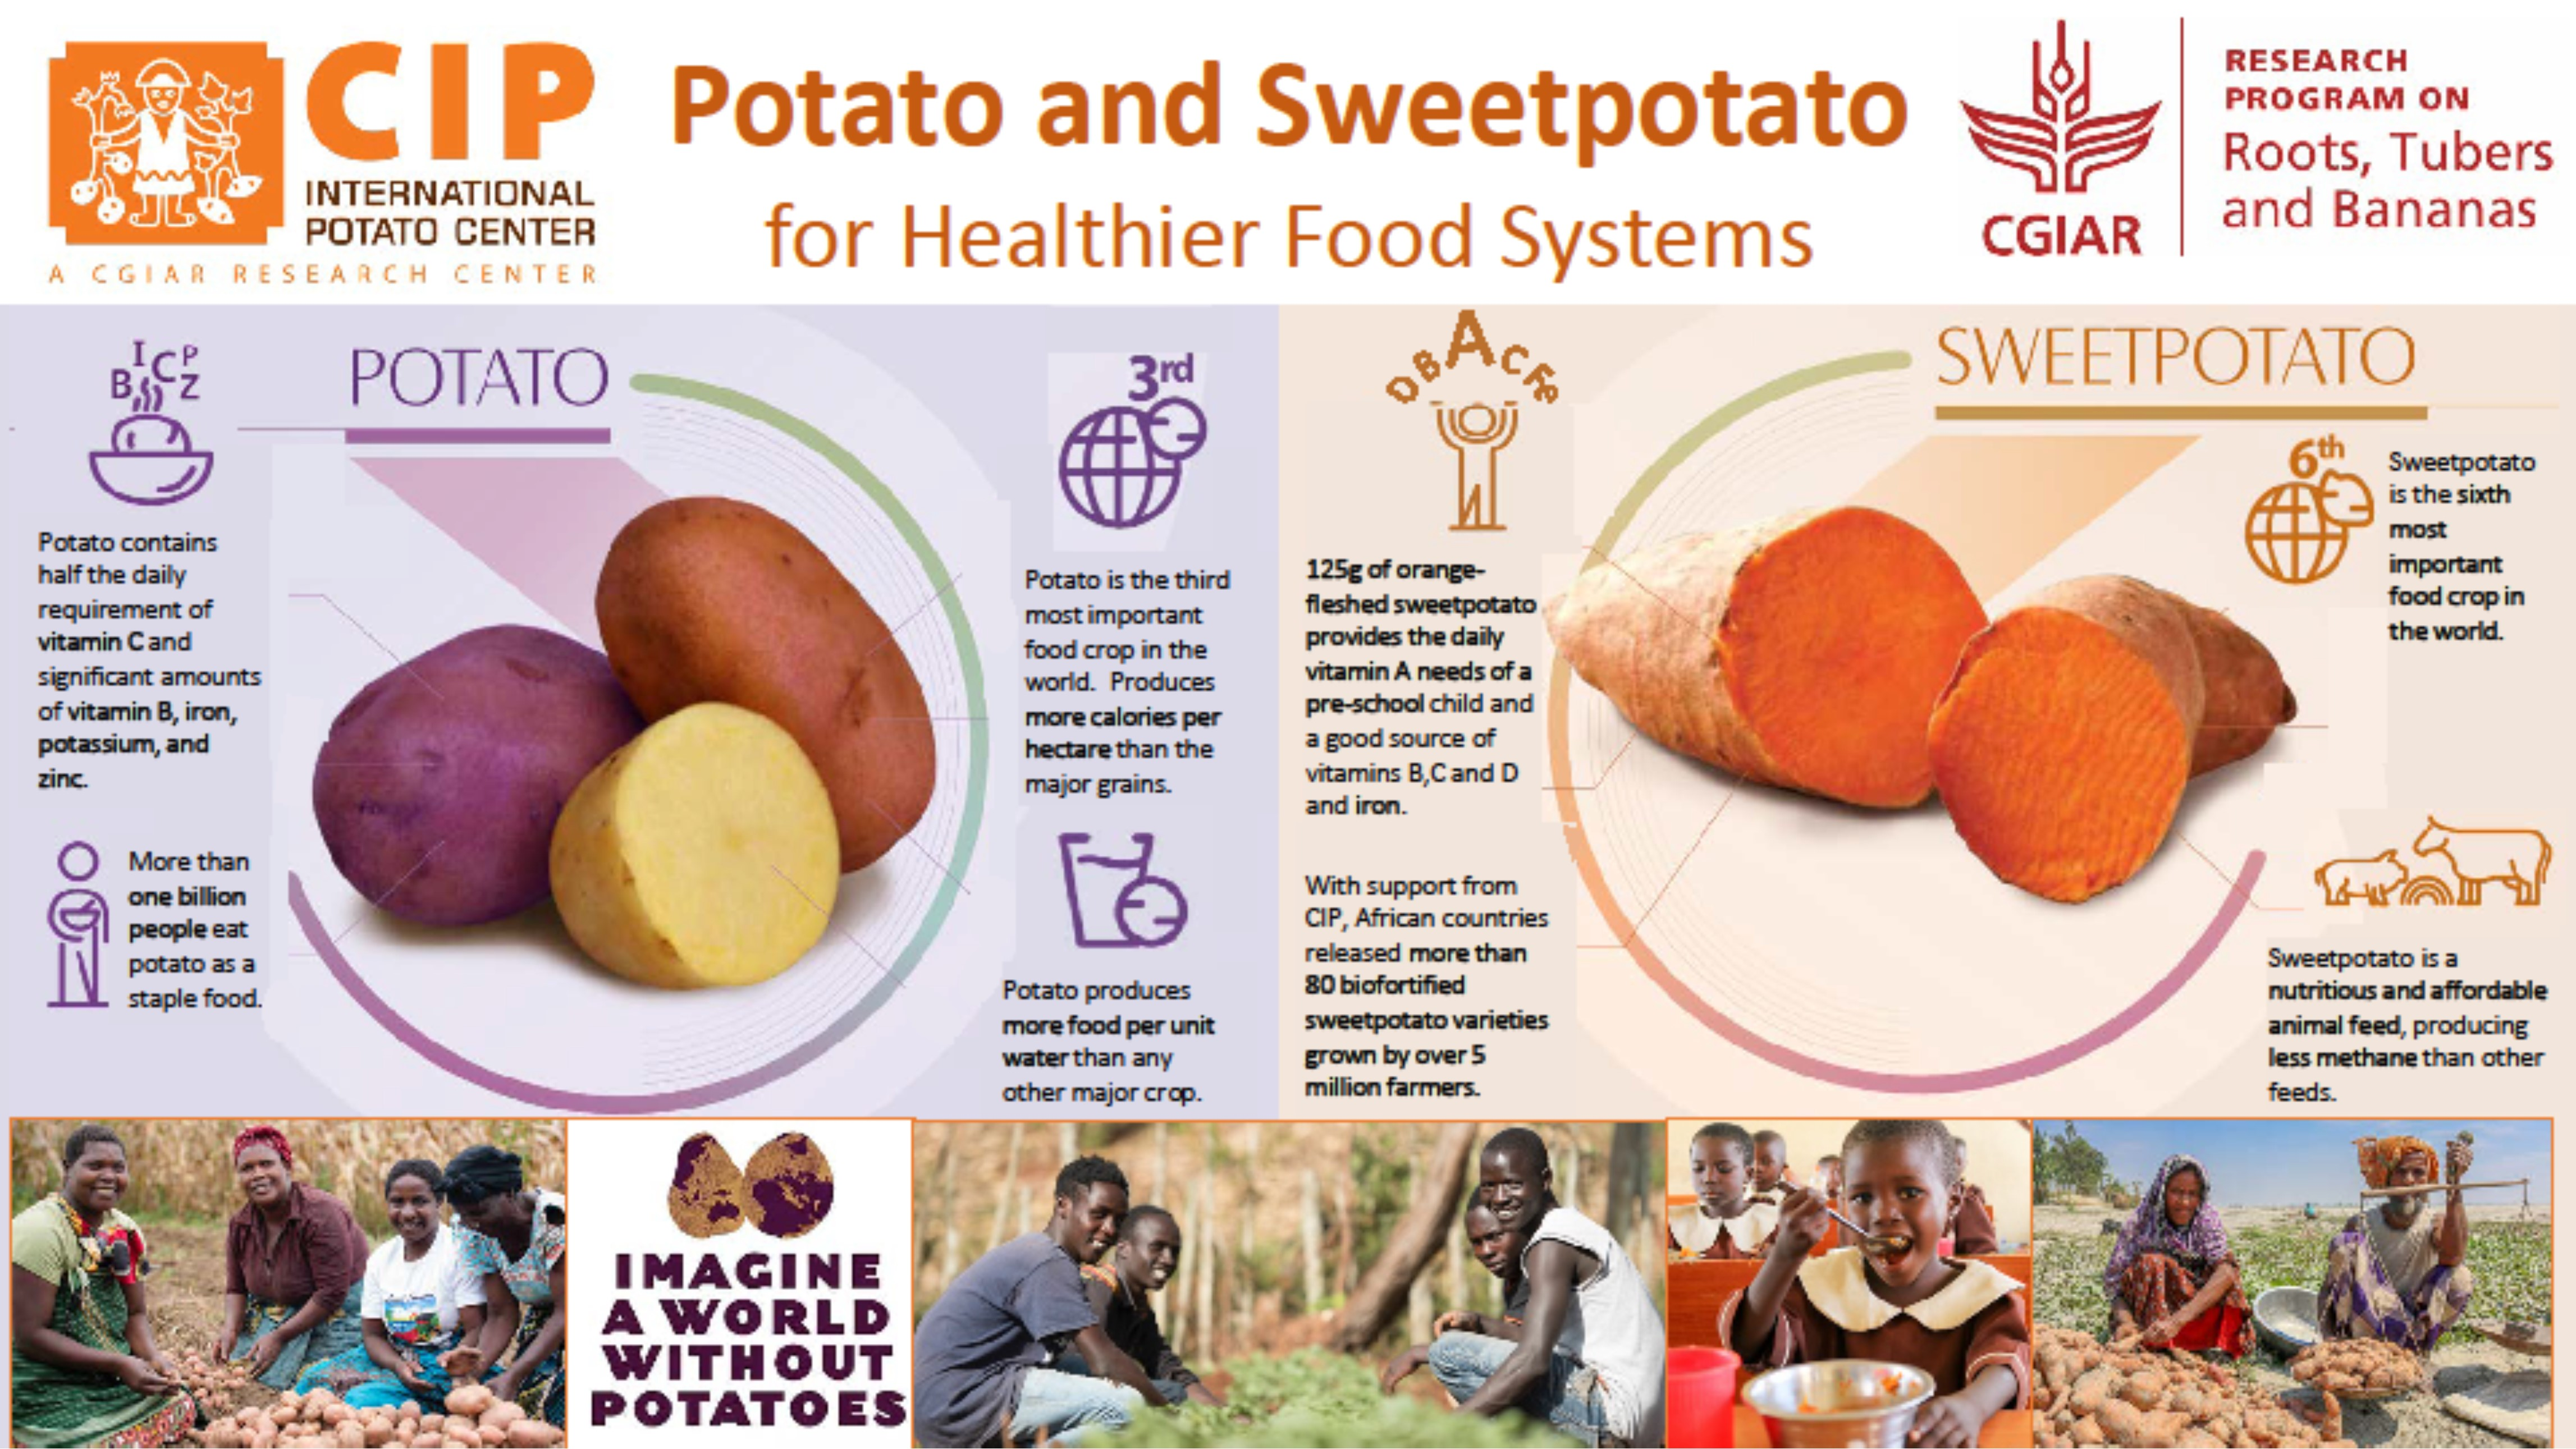 Potato and Sweetpotato for Healthier Food Systems